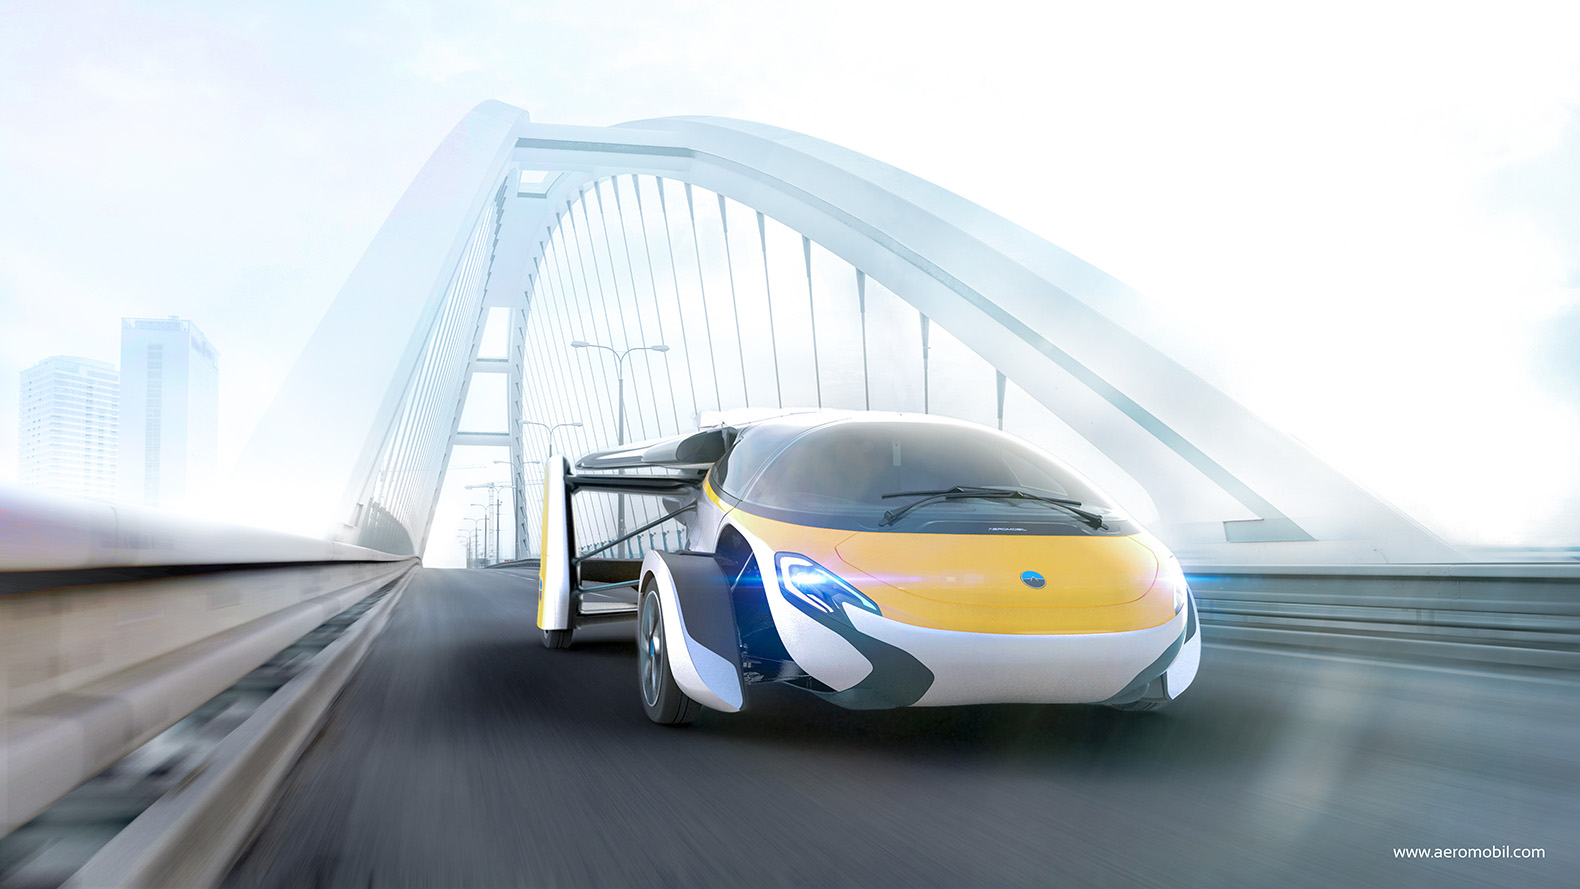 AeroMobil is launching a flying car that you can actually buy this year